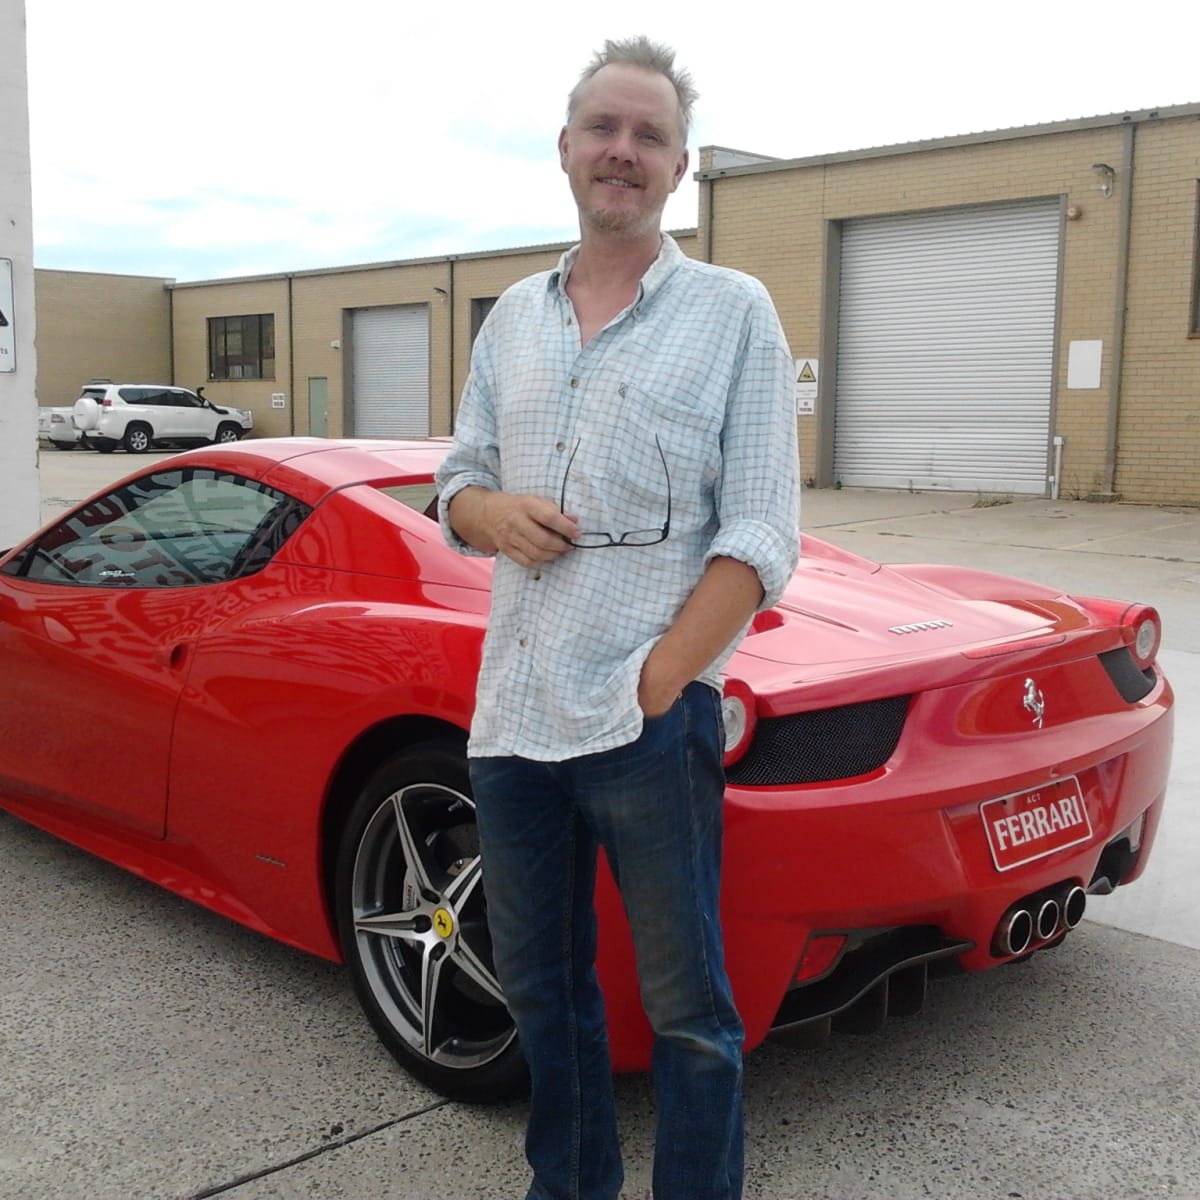 The Real Cost Of A Ferrari Axleaddict A Community Of Car Lovers Enthusiasts And Mechanics Sharing Our Auto Advice